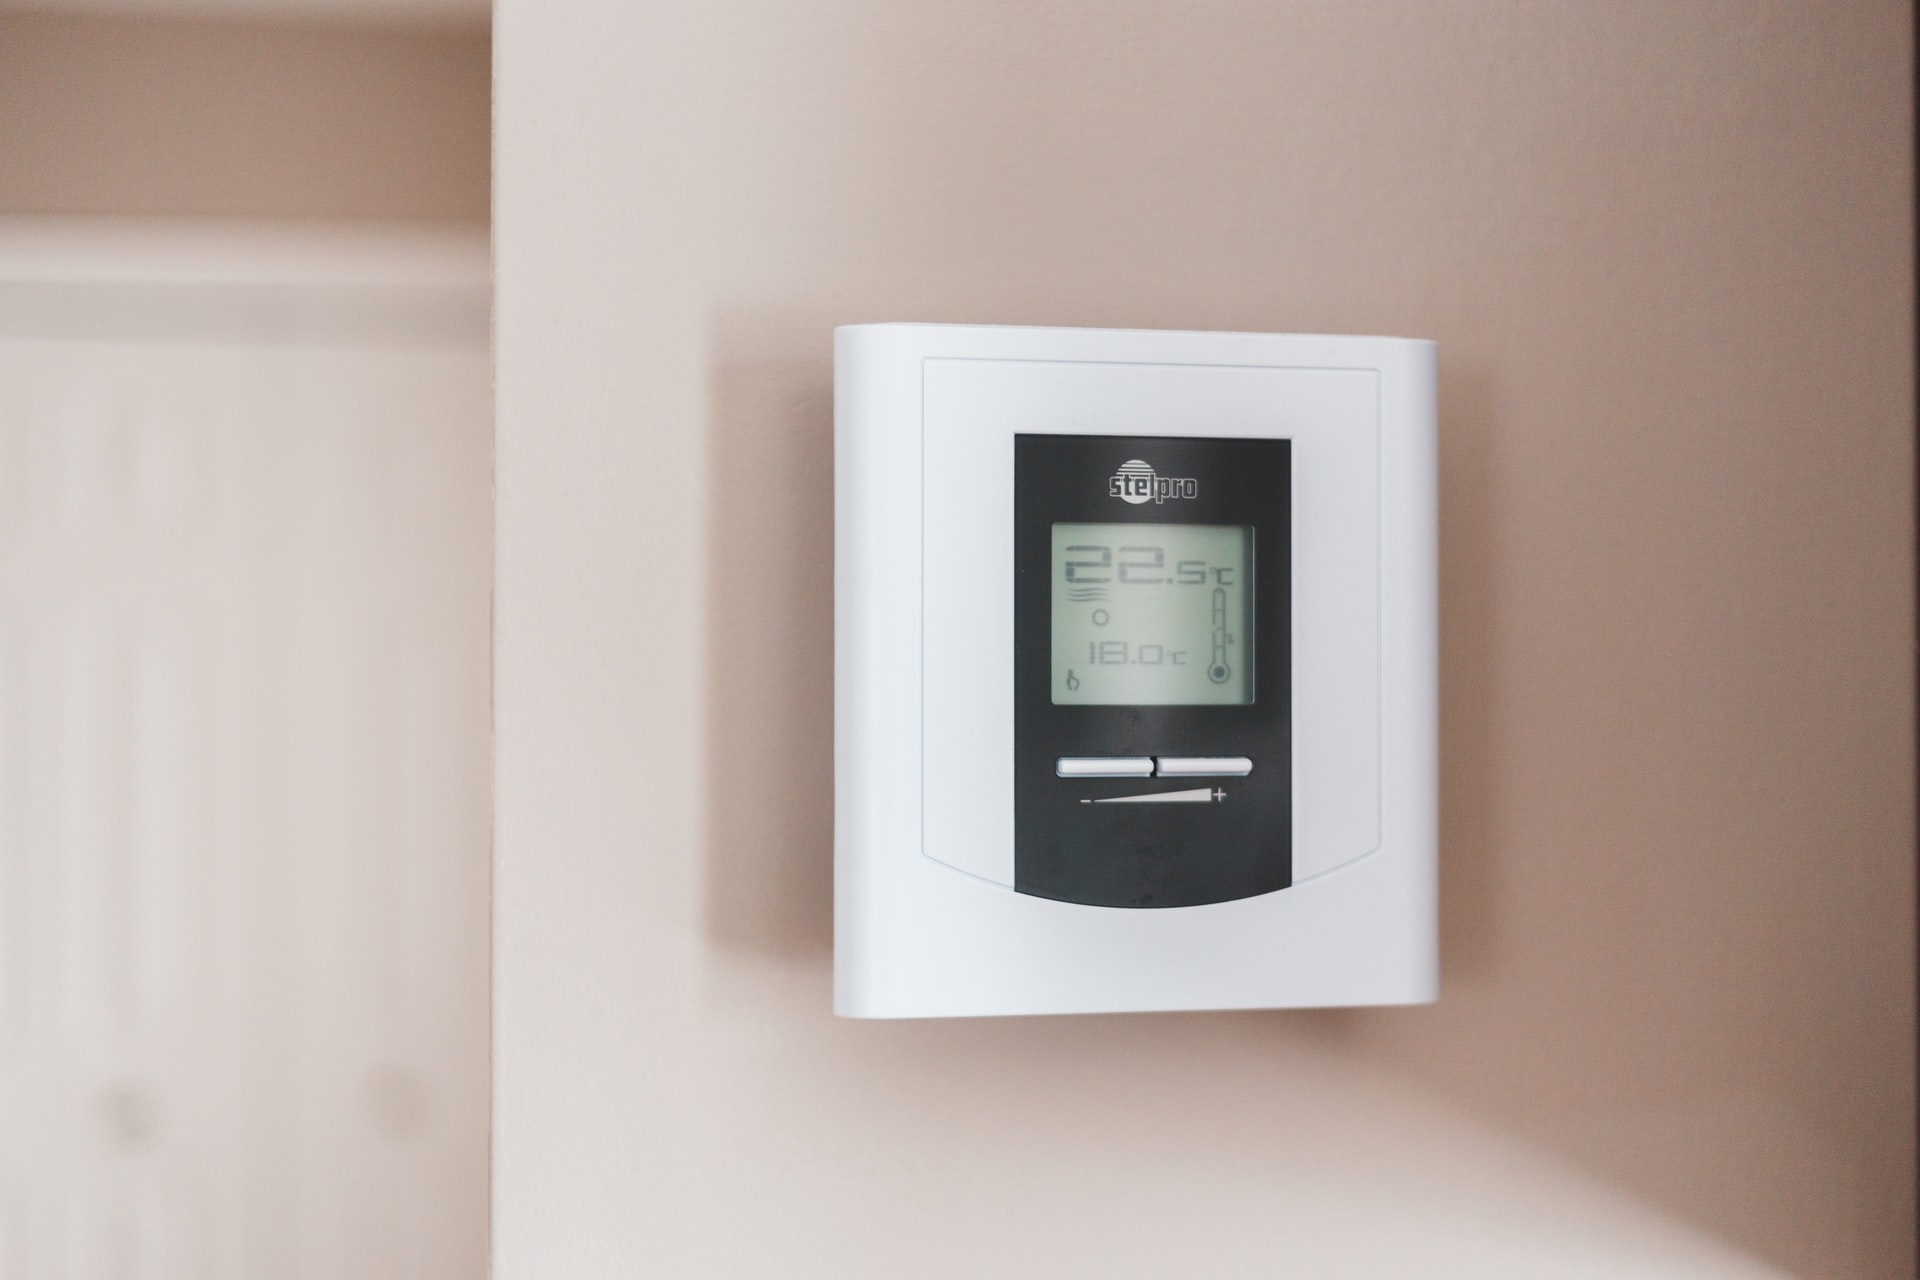 domestic renewable heating system